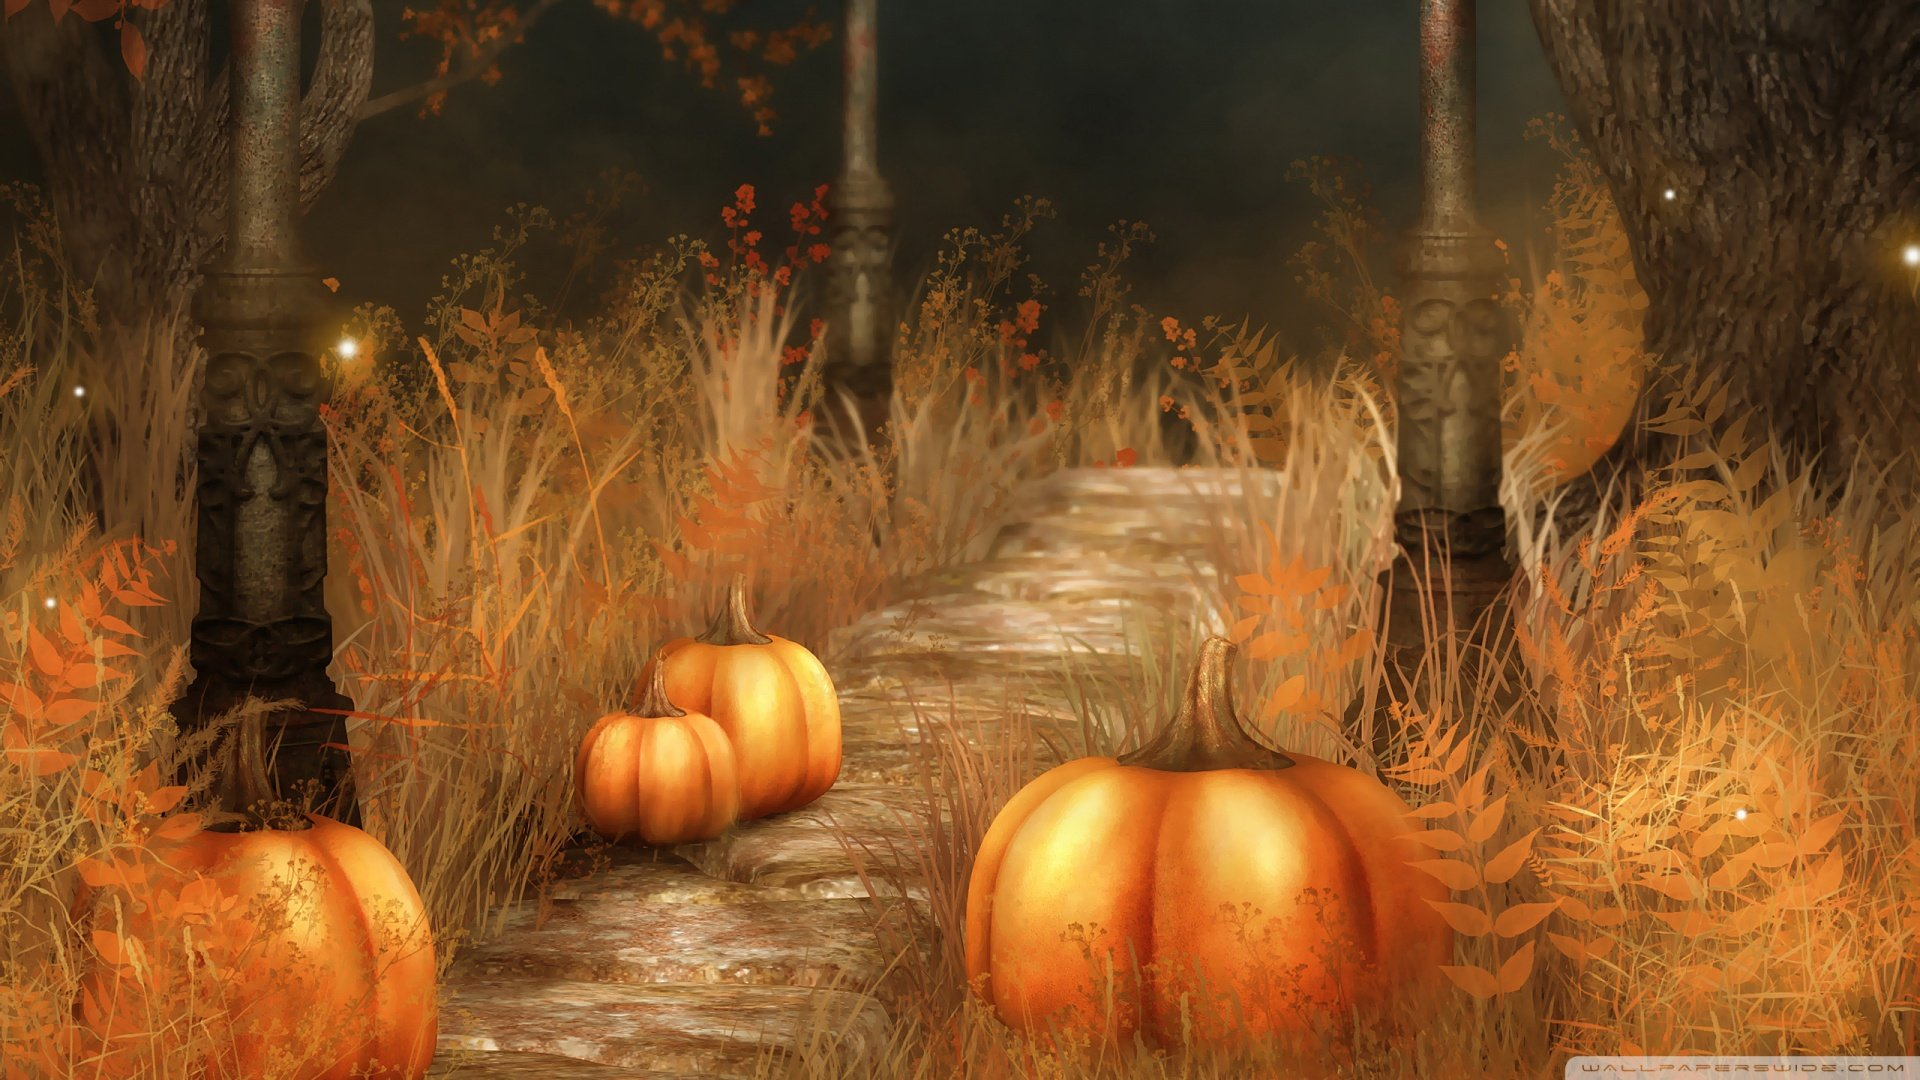 Pumpkins Halloween Wallpaper Free Download